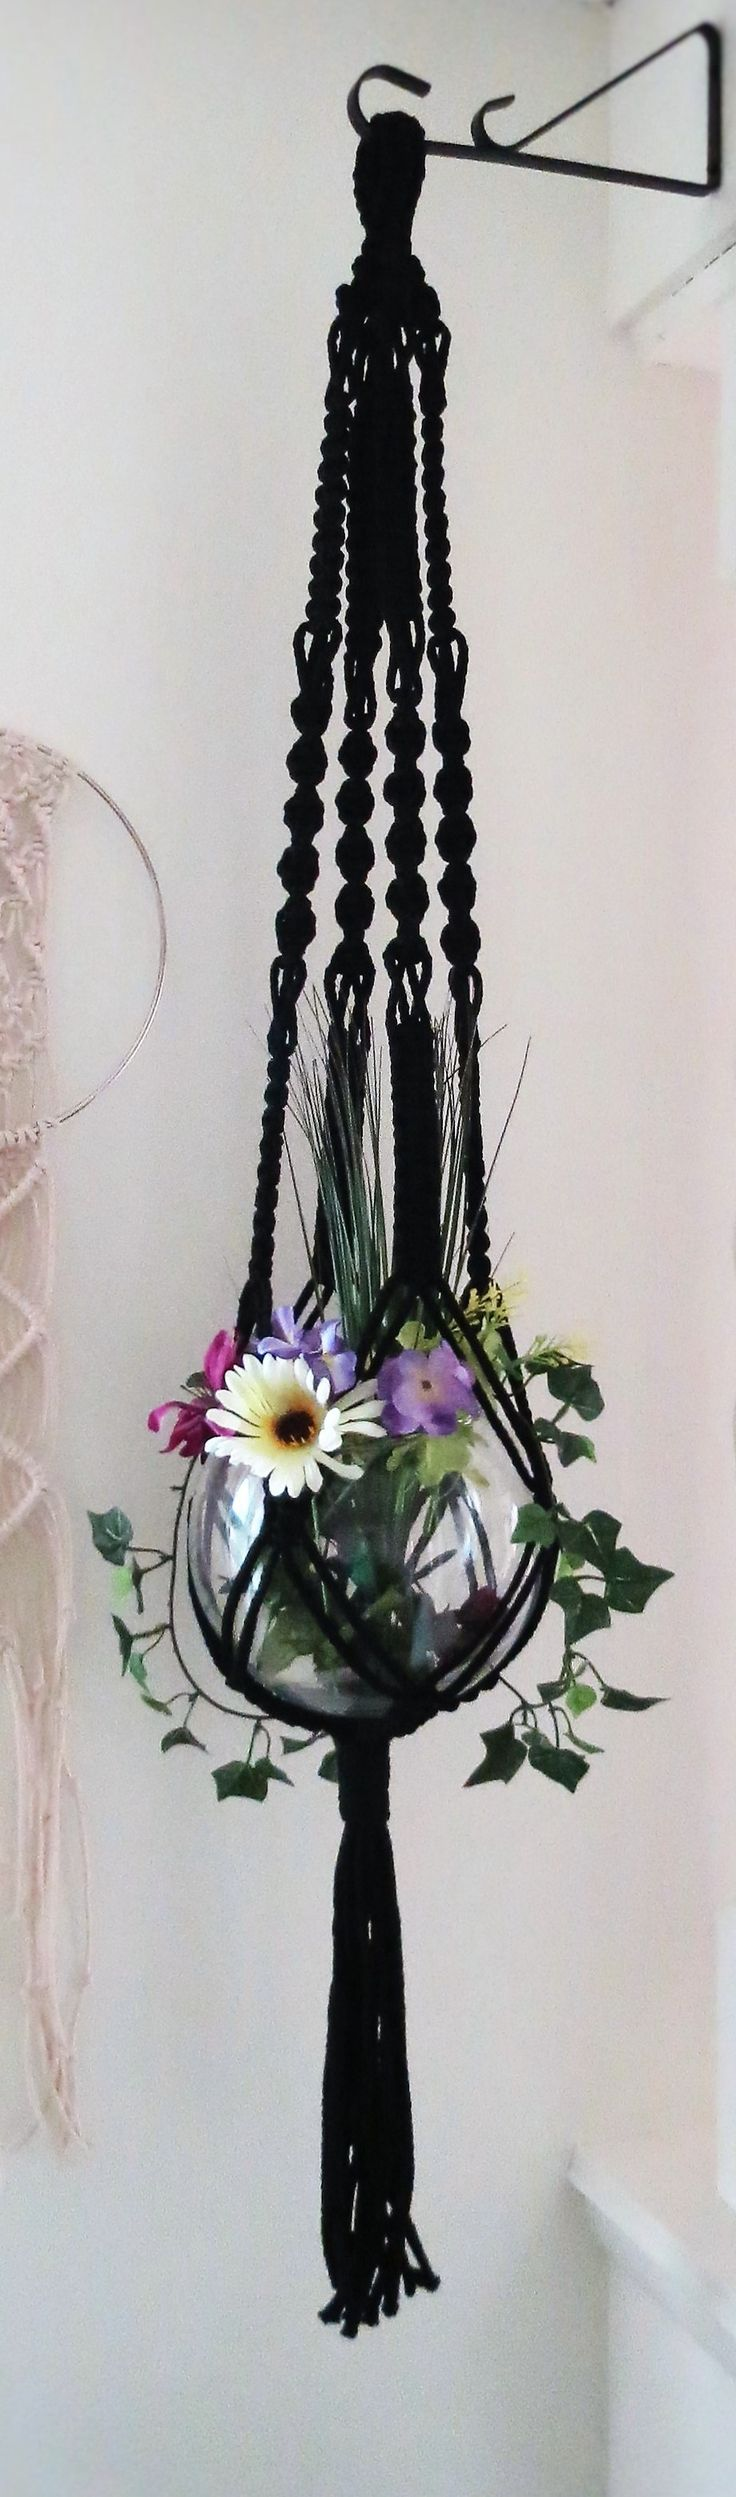 25+ Unique Plant Hangers Ideas On Pinterest | Plant Hanger, Macrame Plant  Hanger Diy And Plant Hanger Diy